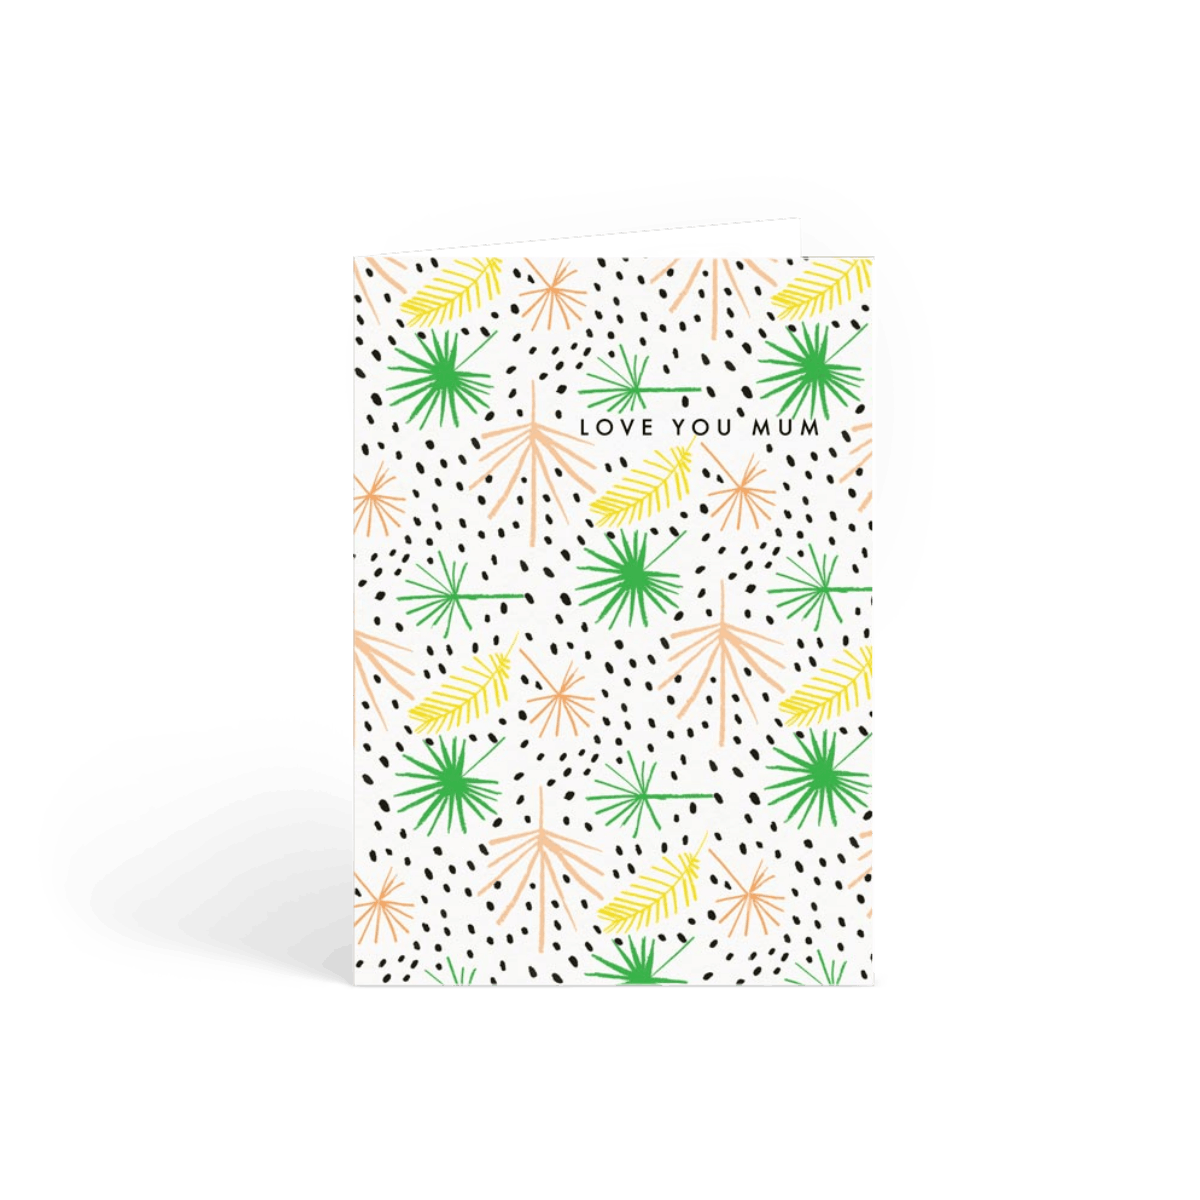 Https%3a%2f%2fwww.papier.com%2fproduct image%2f19531%2f2%2fpalms for mum 5014 front 1487350847.png?ixlib=rb 1.1